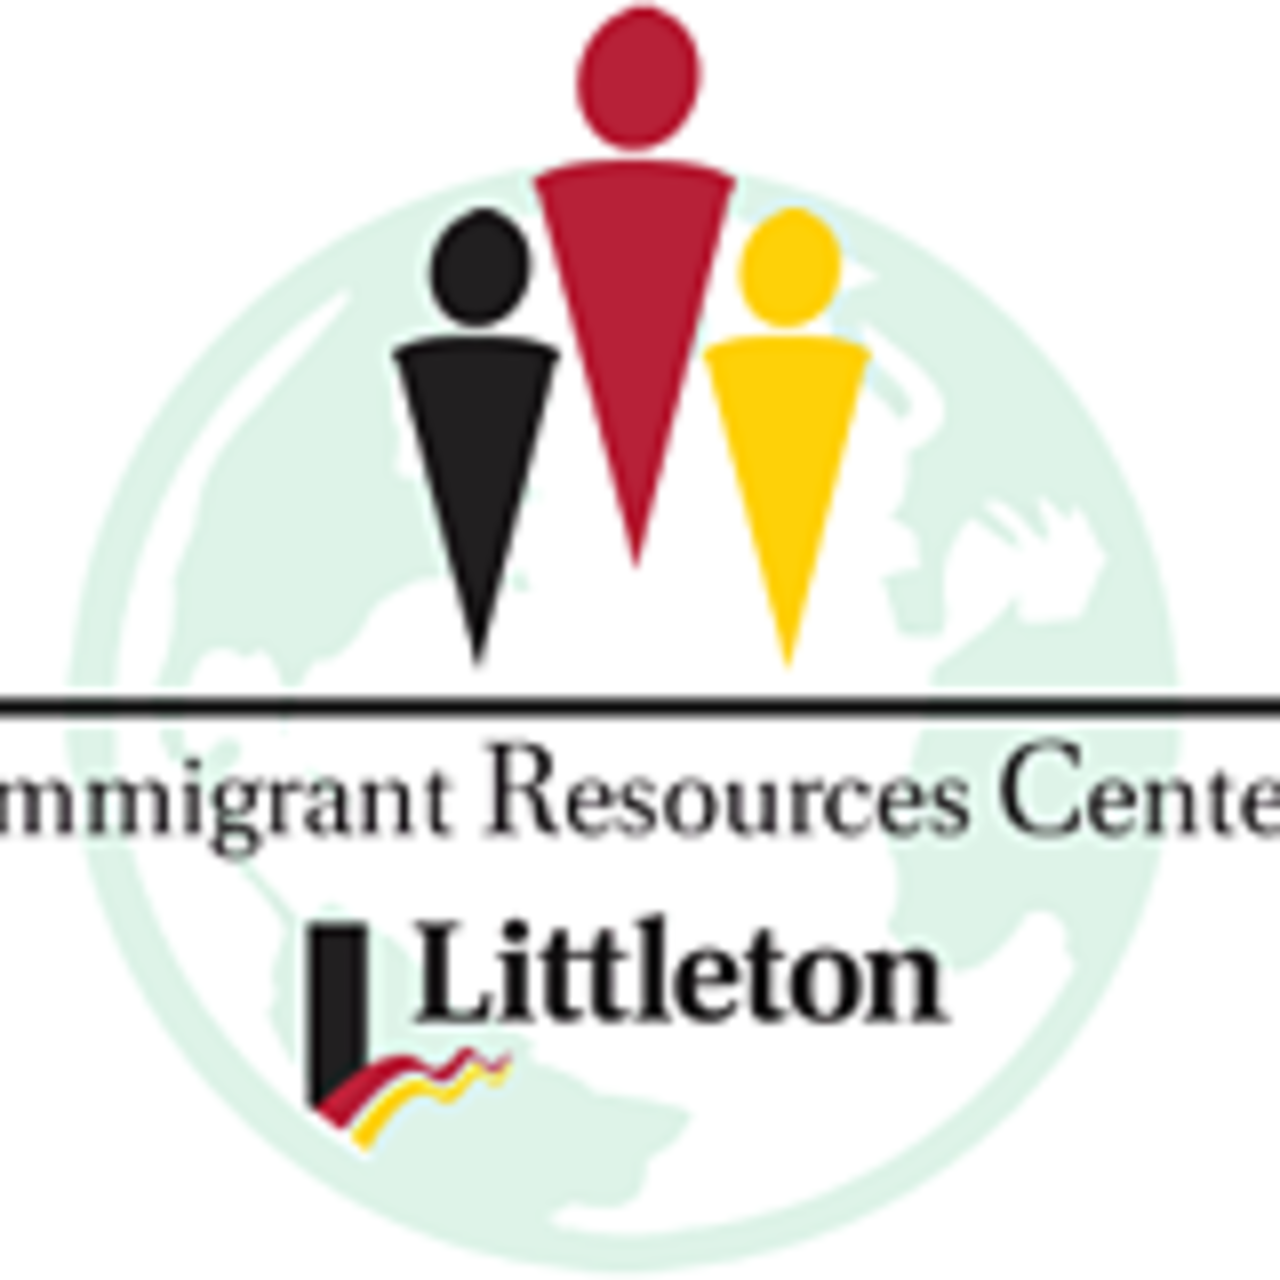 Littleton Immigrant Resources Center - Community - Social Advocacy Groups in Littleton CO